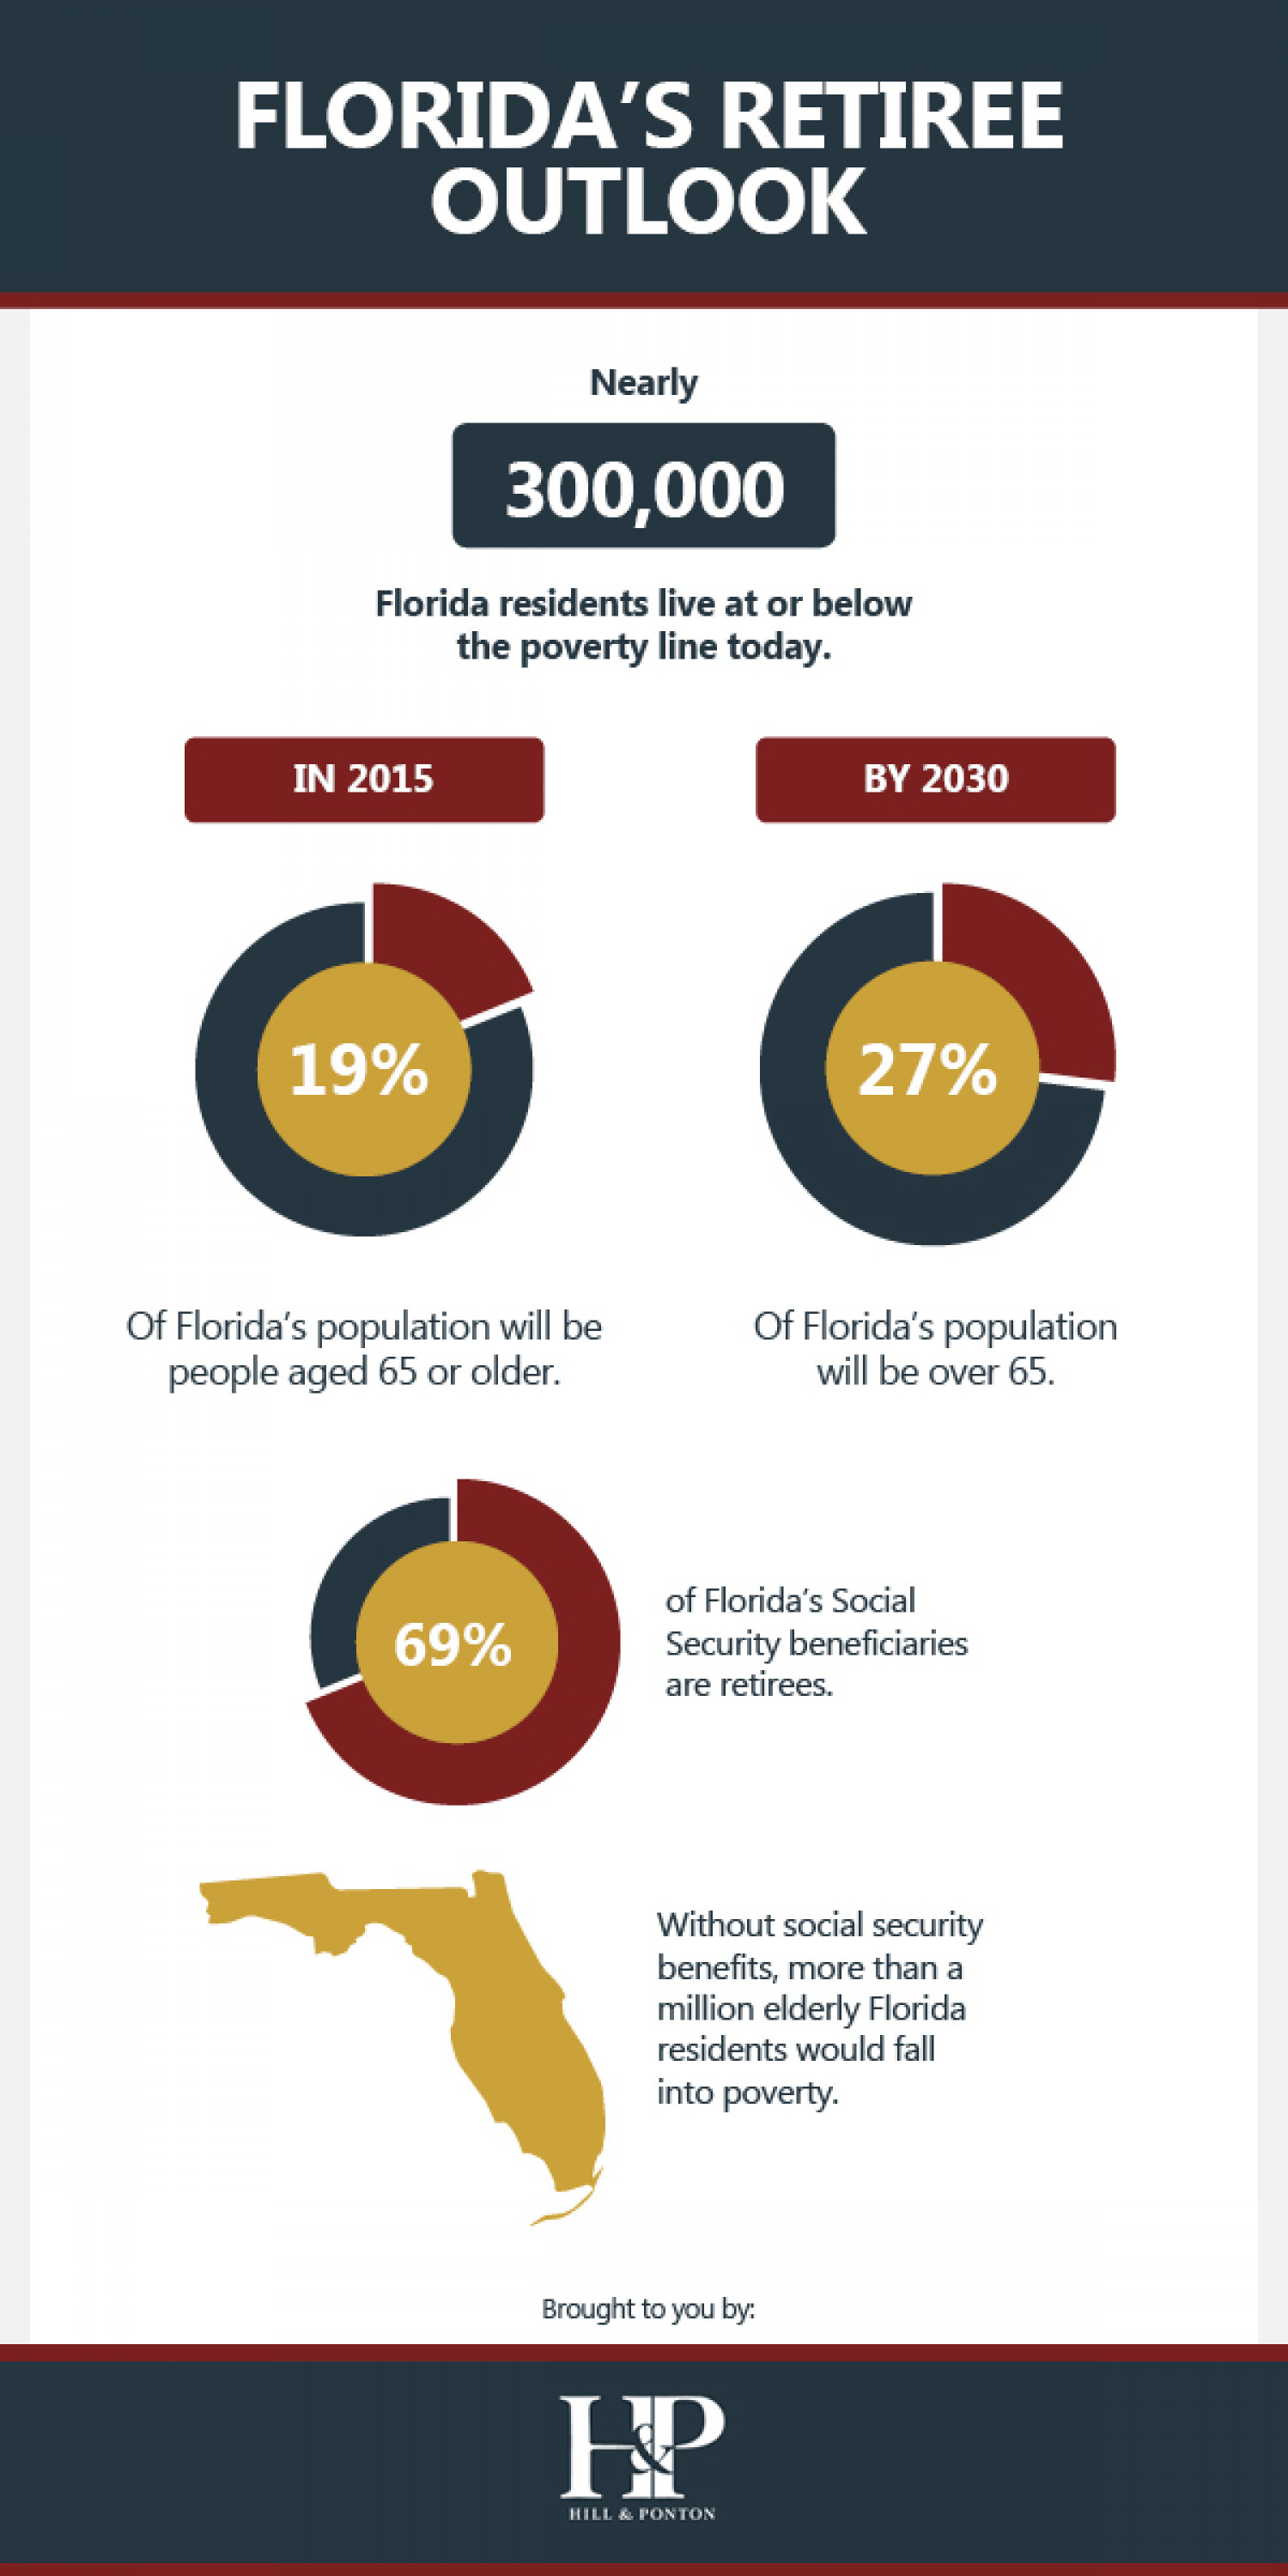 Florida's Retiree Outlook Infographic